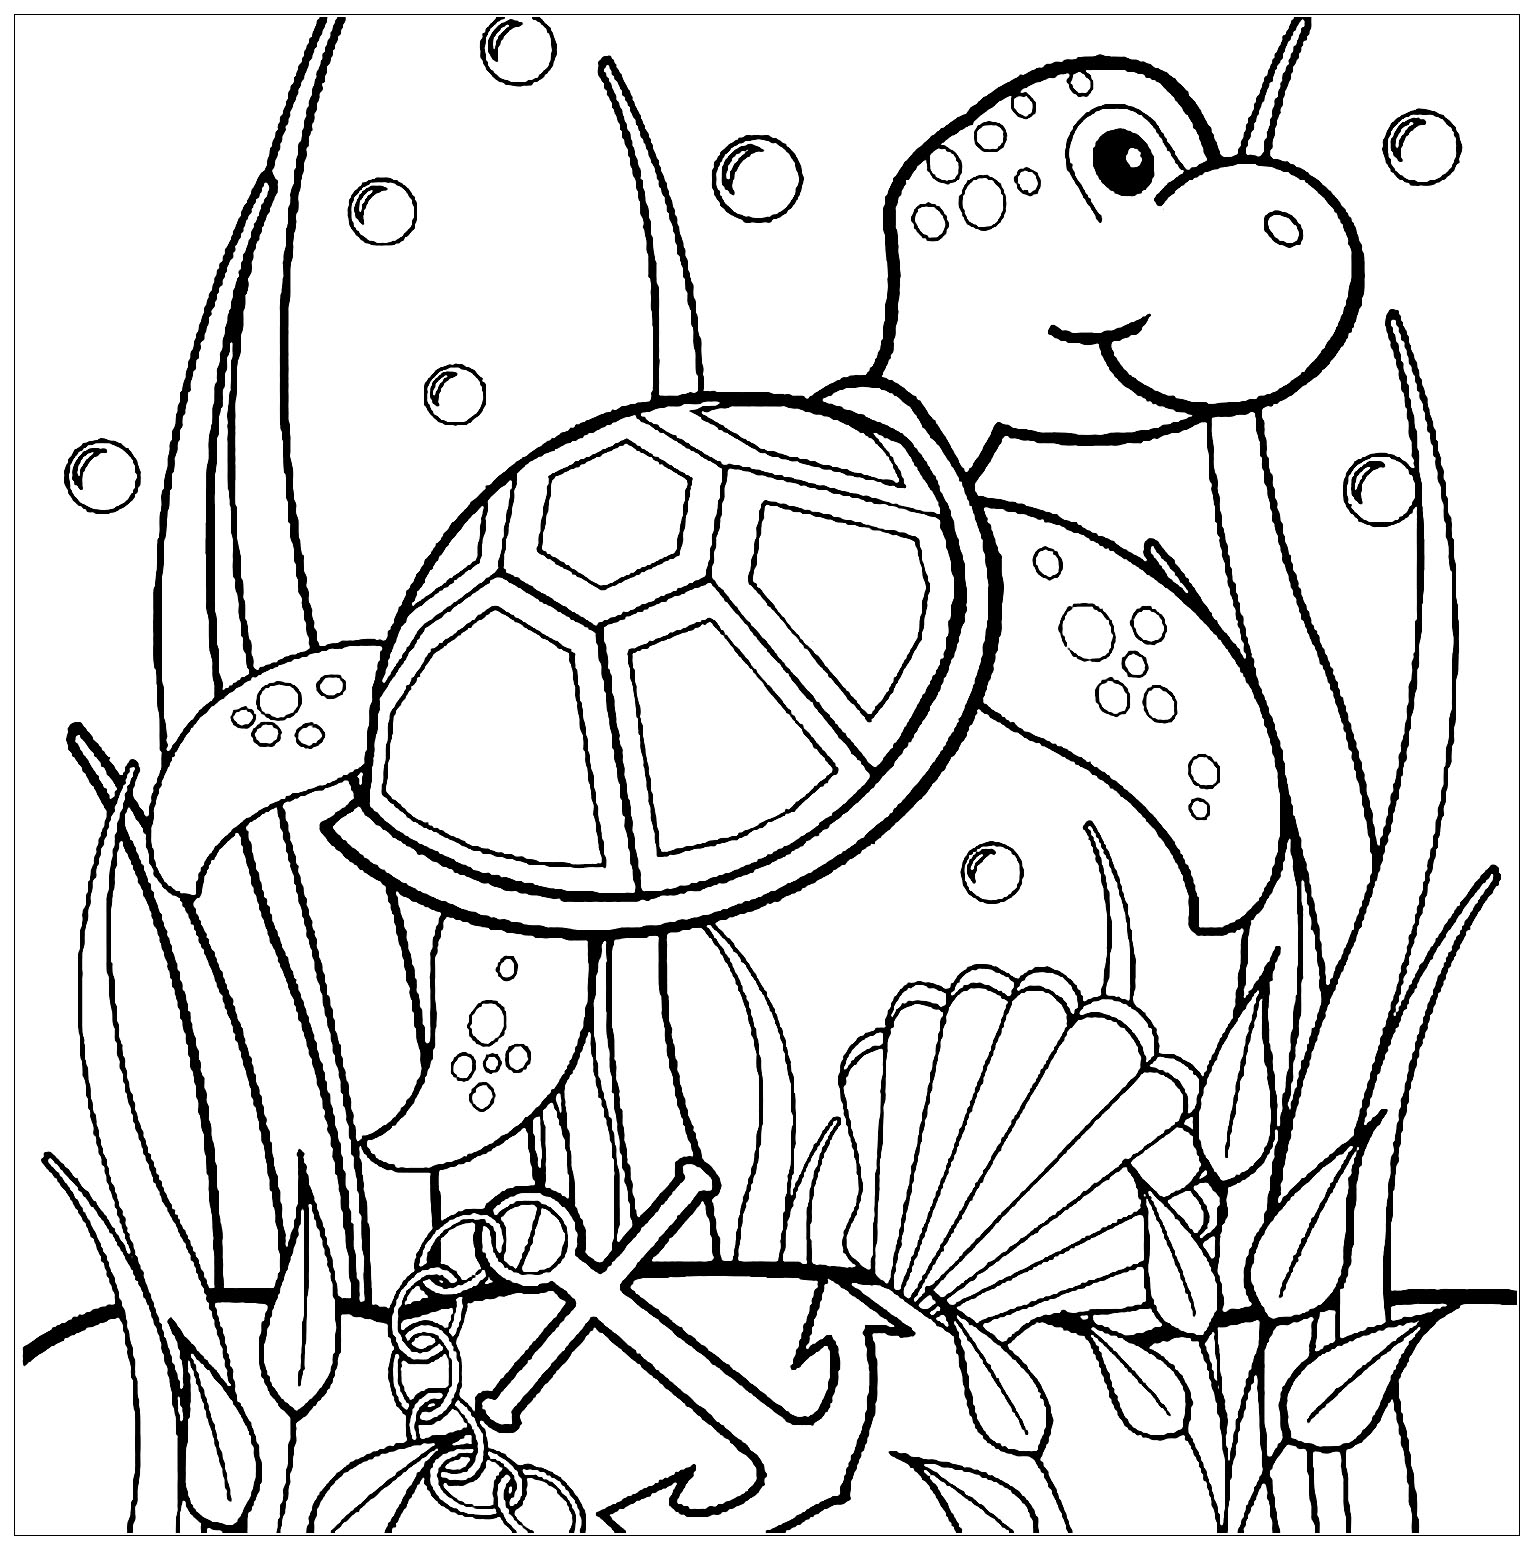 Turtles Free To Color For Children